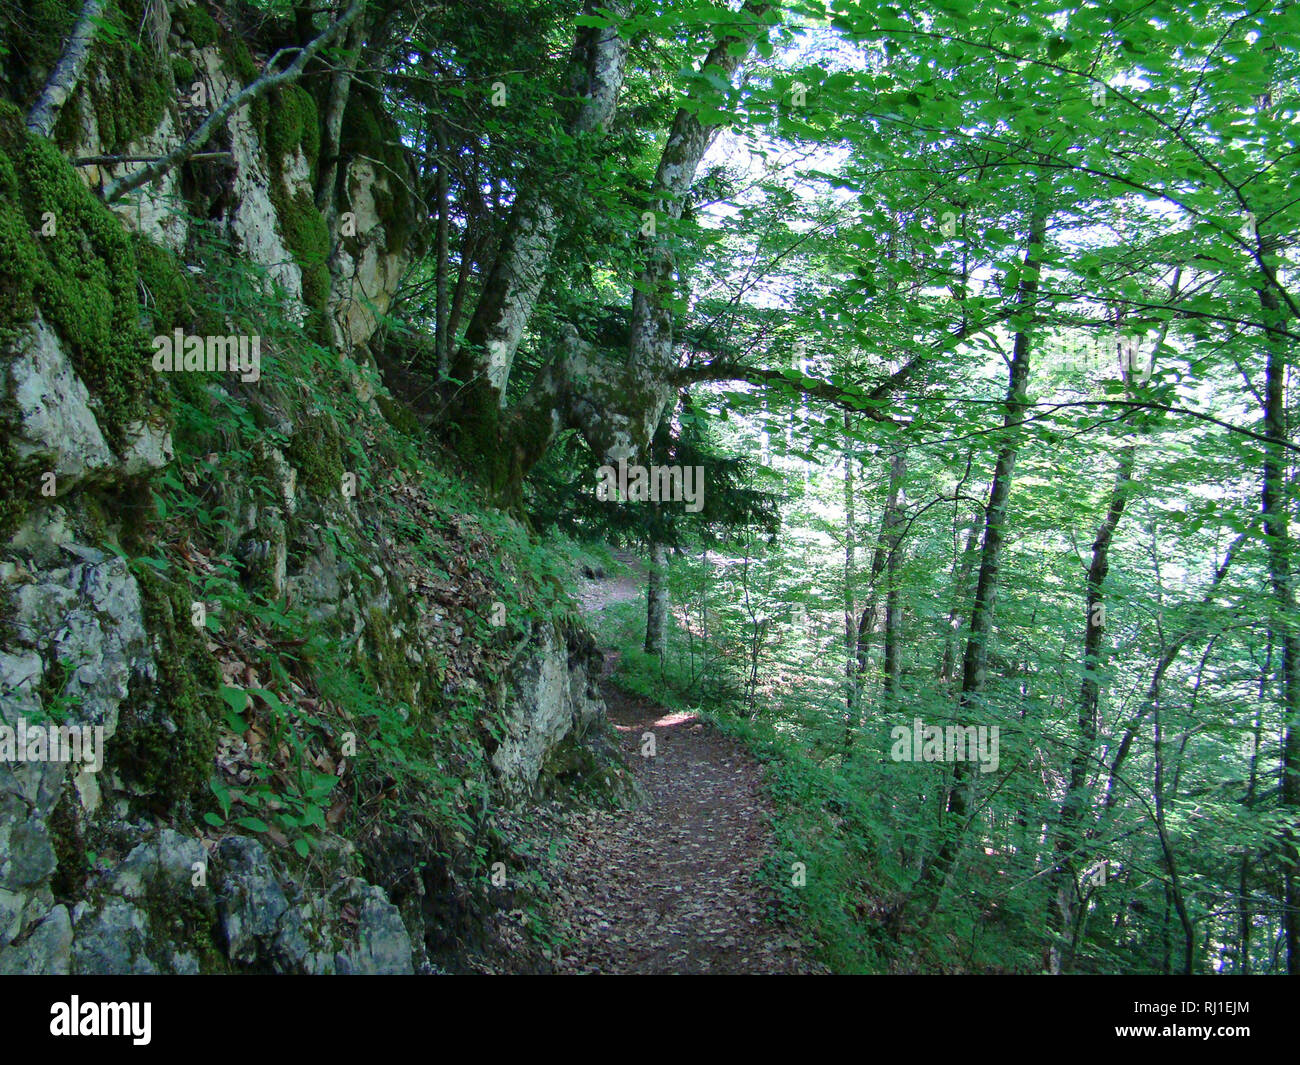 Beech forests in Olympus national park (northeastern Greece), one of the last remnant habitats of the brown bear (Ursus arctos) in Europe - Stock Image